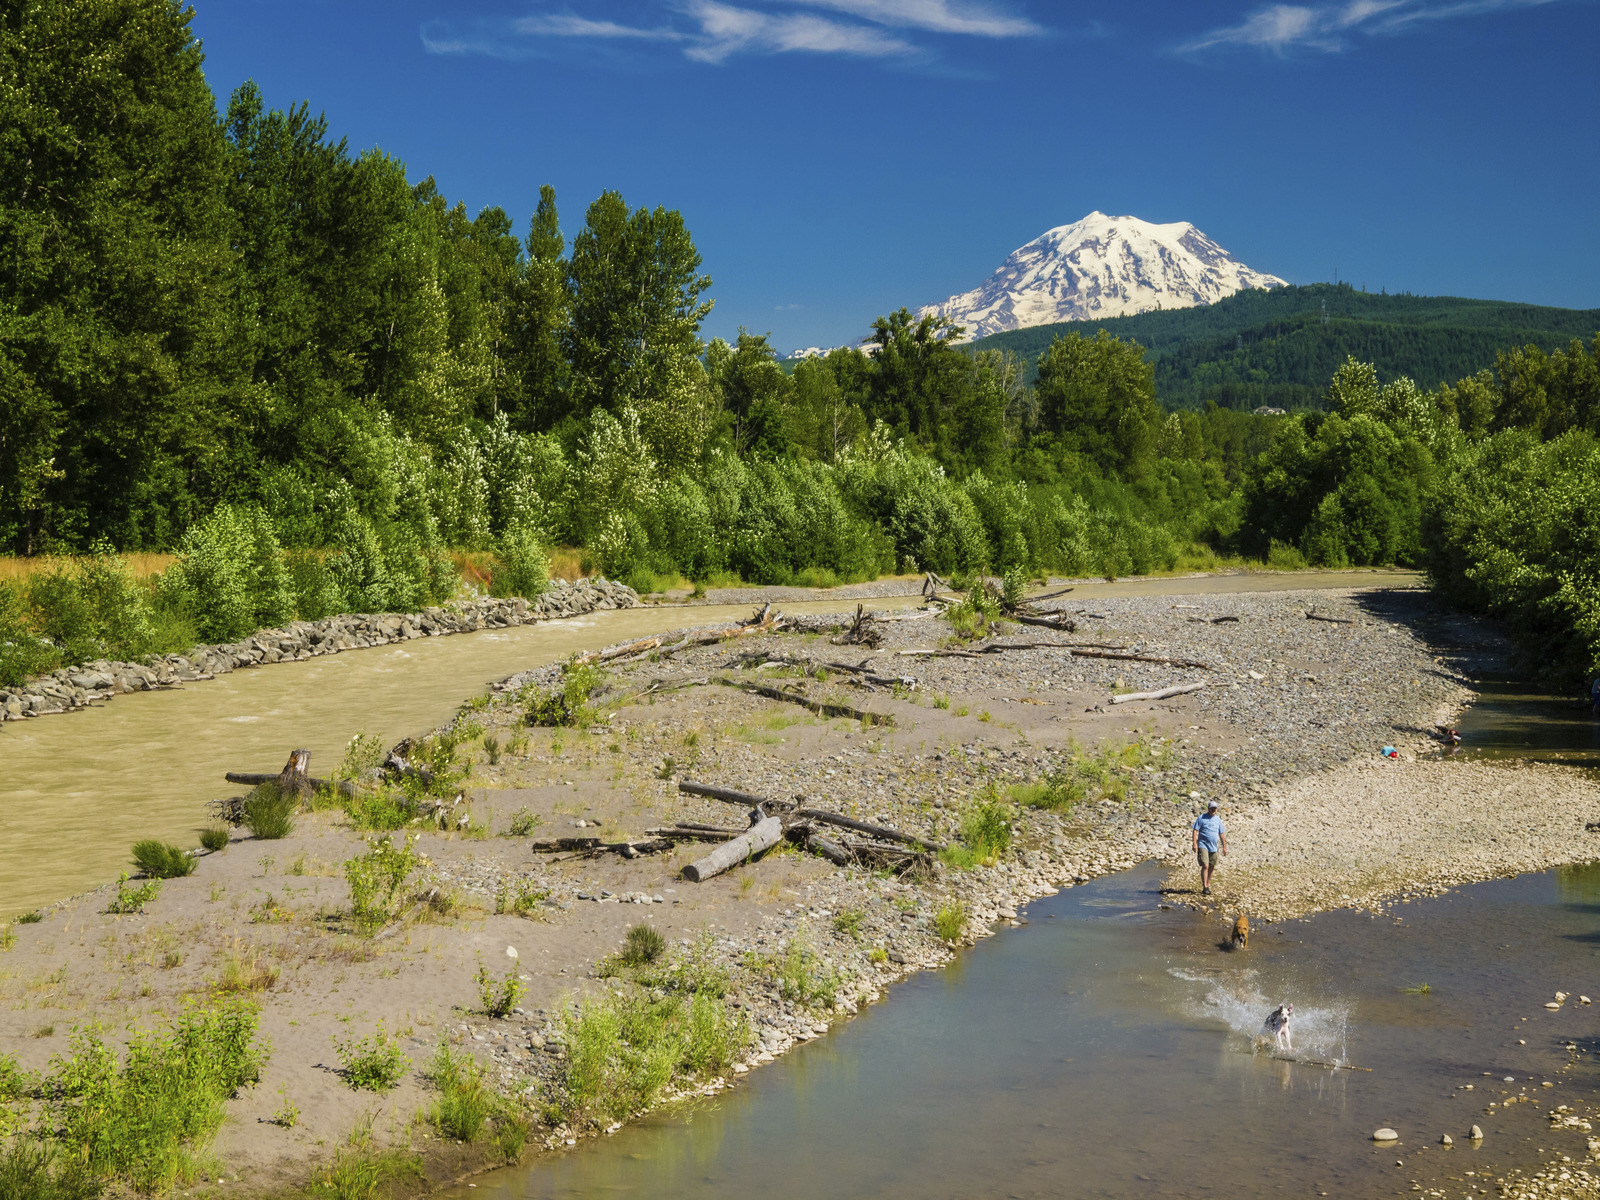 Recreation on the Puyallup River in Pierce County is accessible to more families thanks to LWCF funding. Photo by Keith Lazelle.